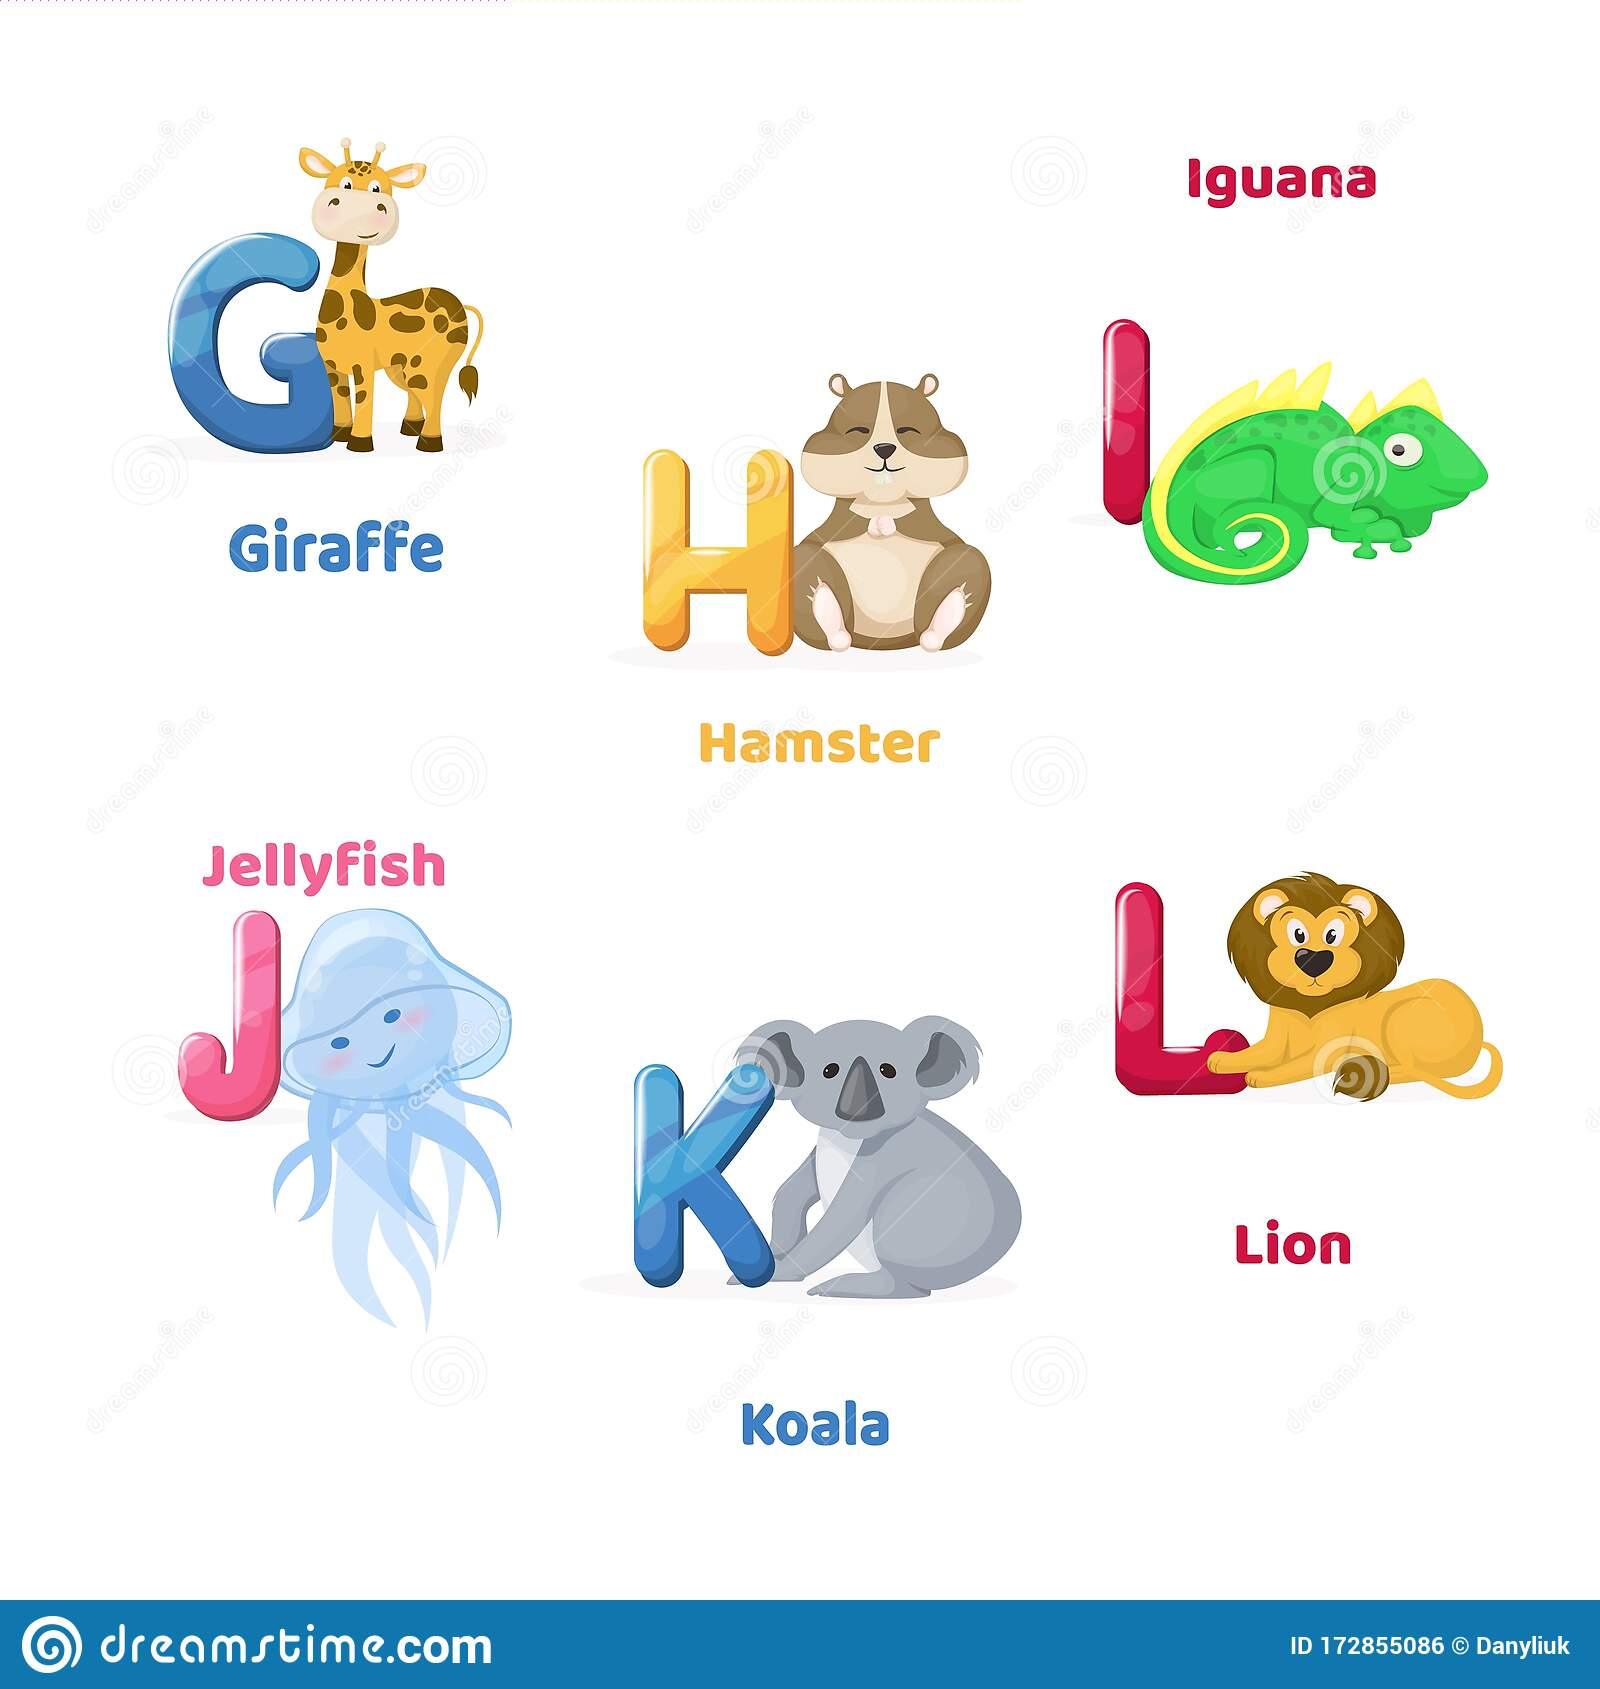 Alphabet Printable Flashcard With Letter G H I J K L Zoo